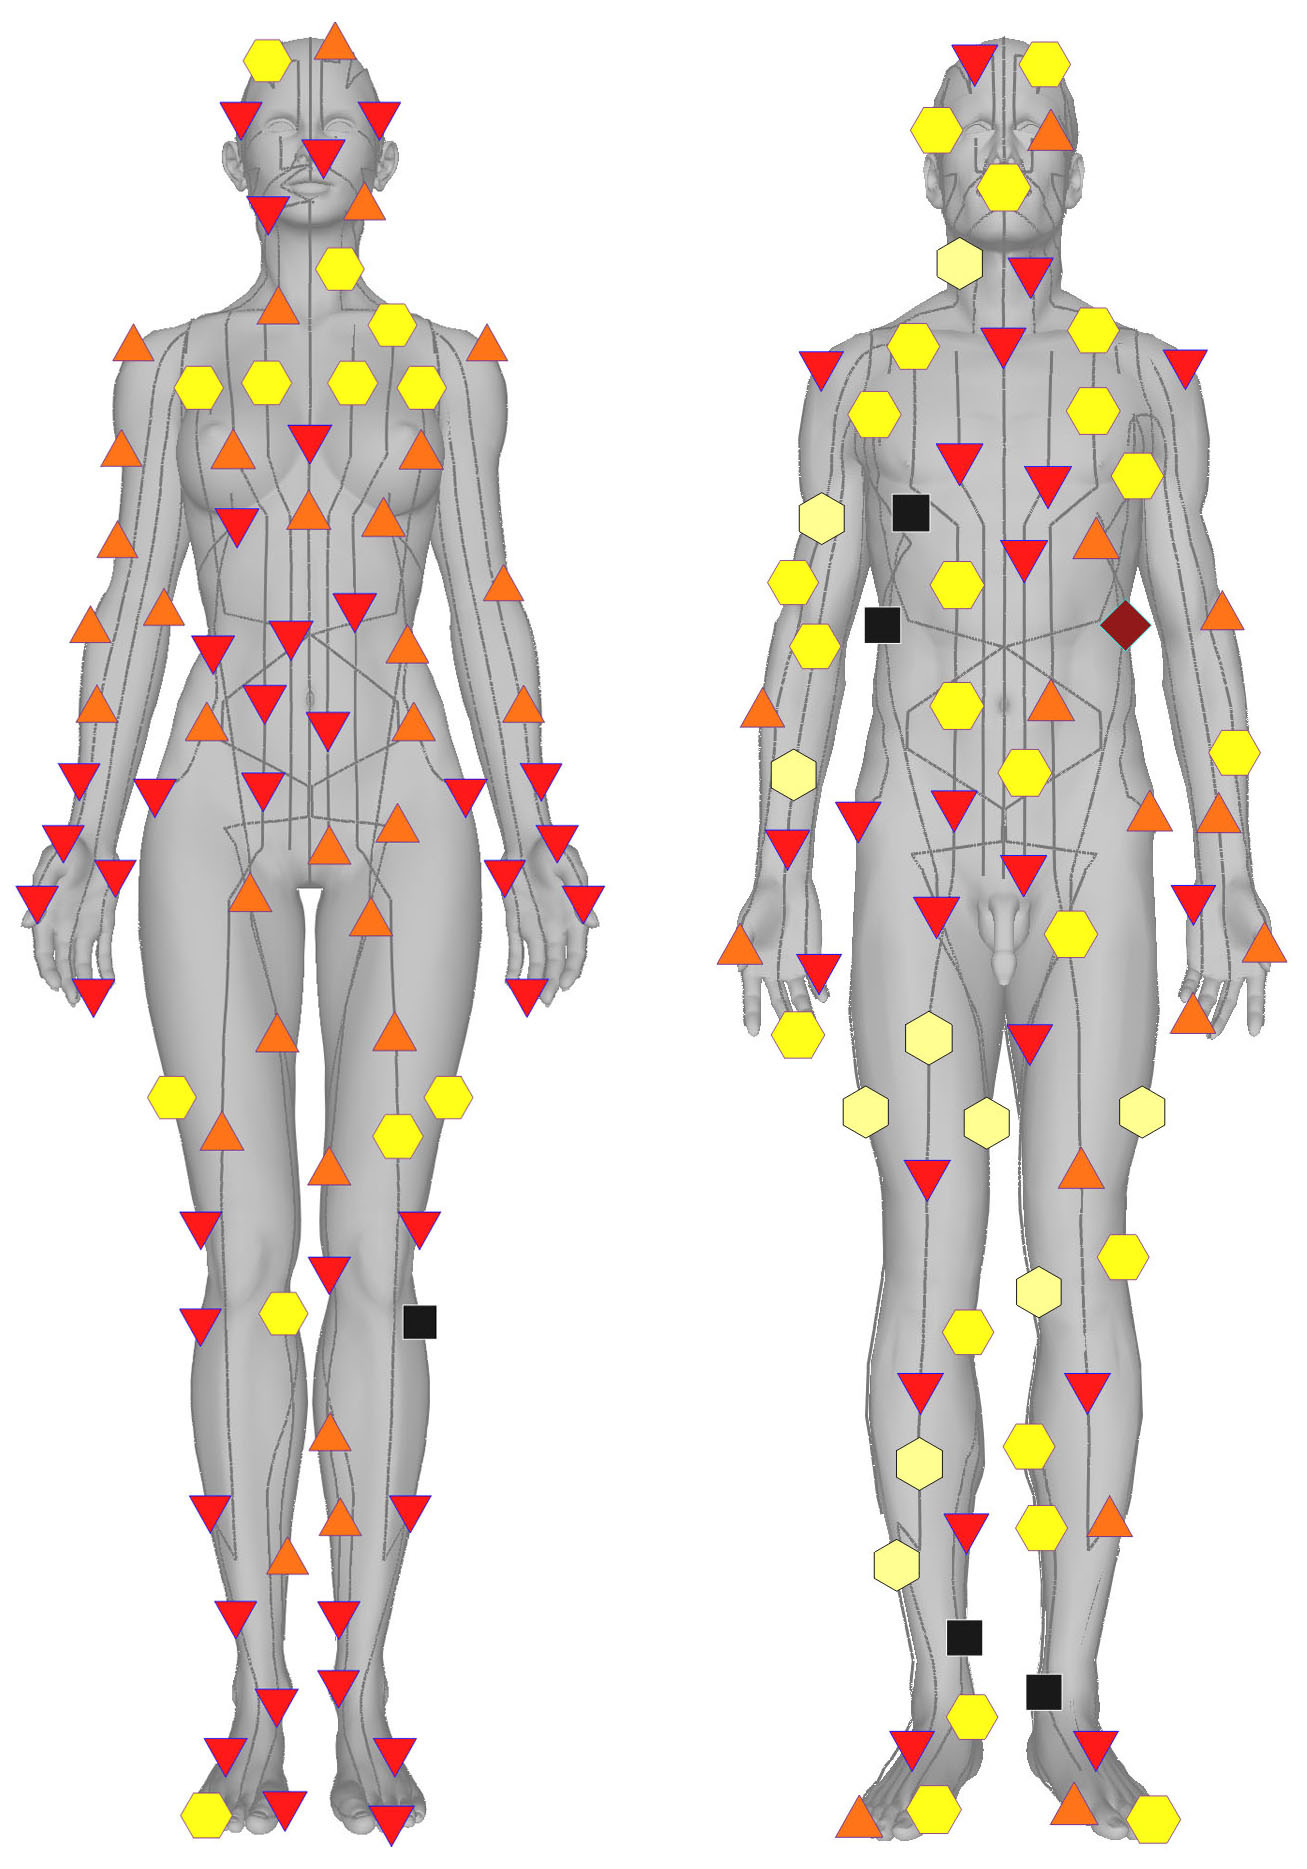 Metatron or Non-linear Scanning (NLS) Scans Body in 3D | Natural